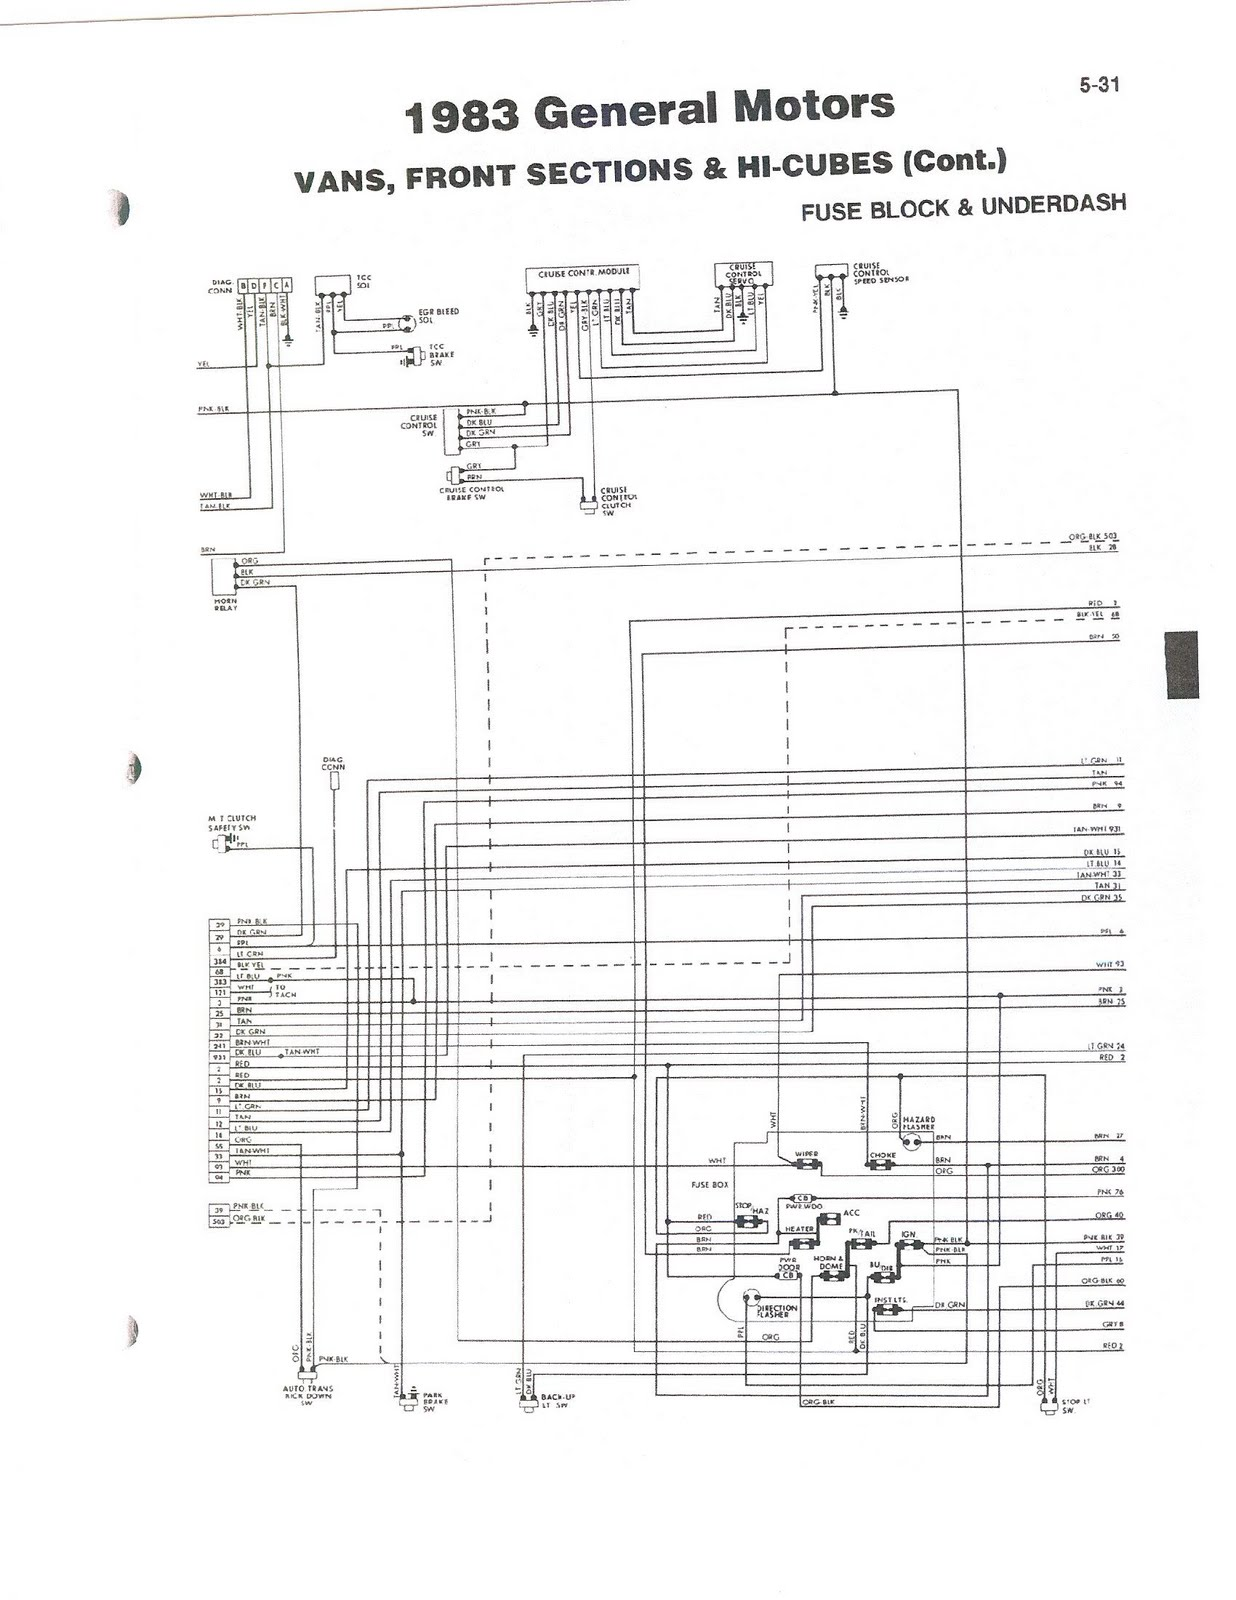 83+GM+Van+front+section+%26+Hi Cubes+fuse+block+%26+underdash 1983 fleetwood pace arrow owners manuals wireing diagram 83 gm 1988 Winnebago Motorhome Wiring Diagram at bakdesigns.co